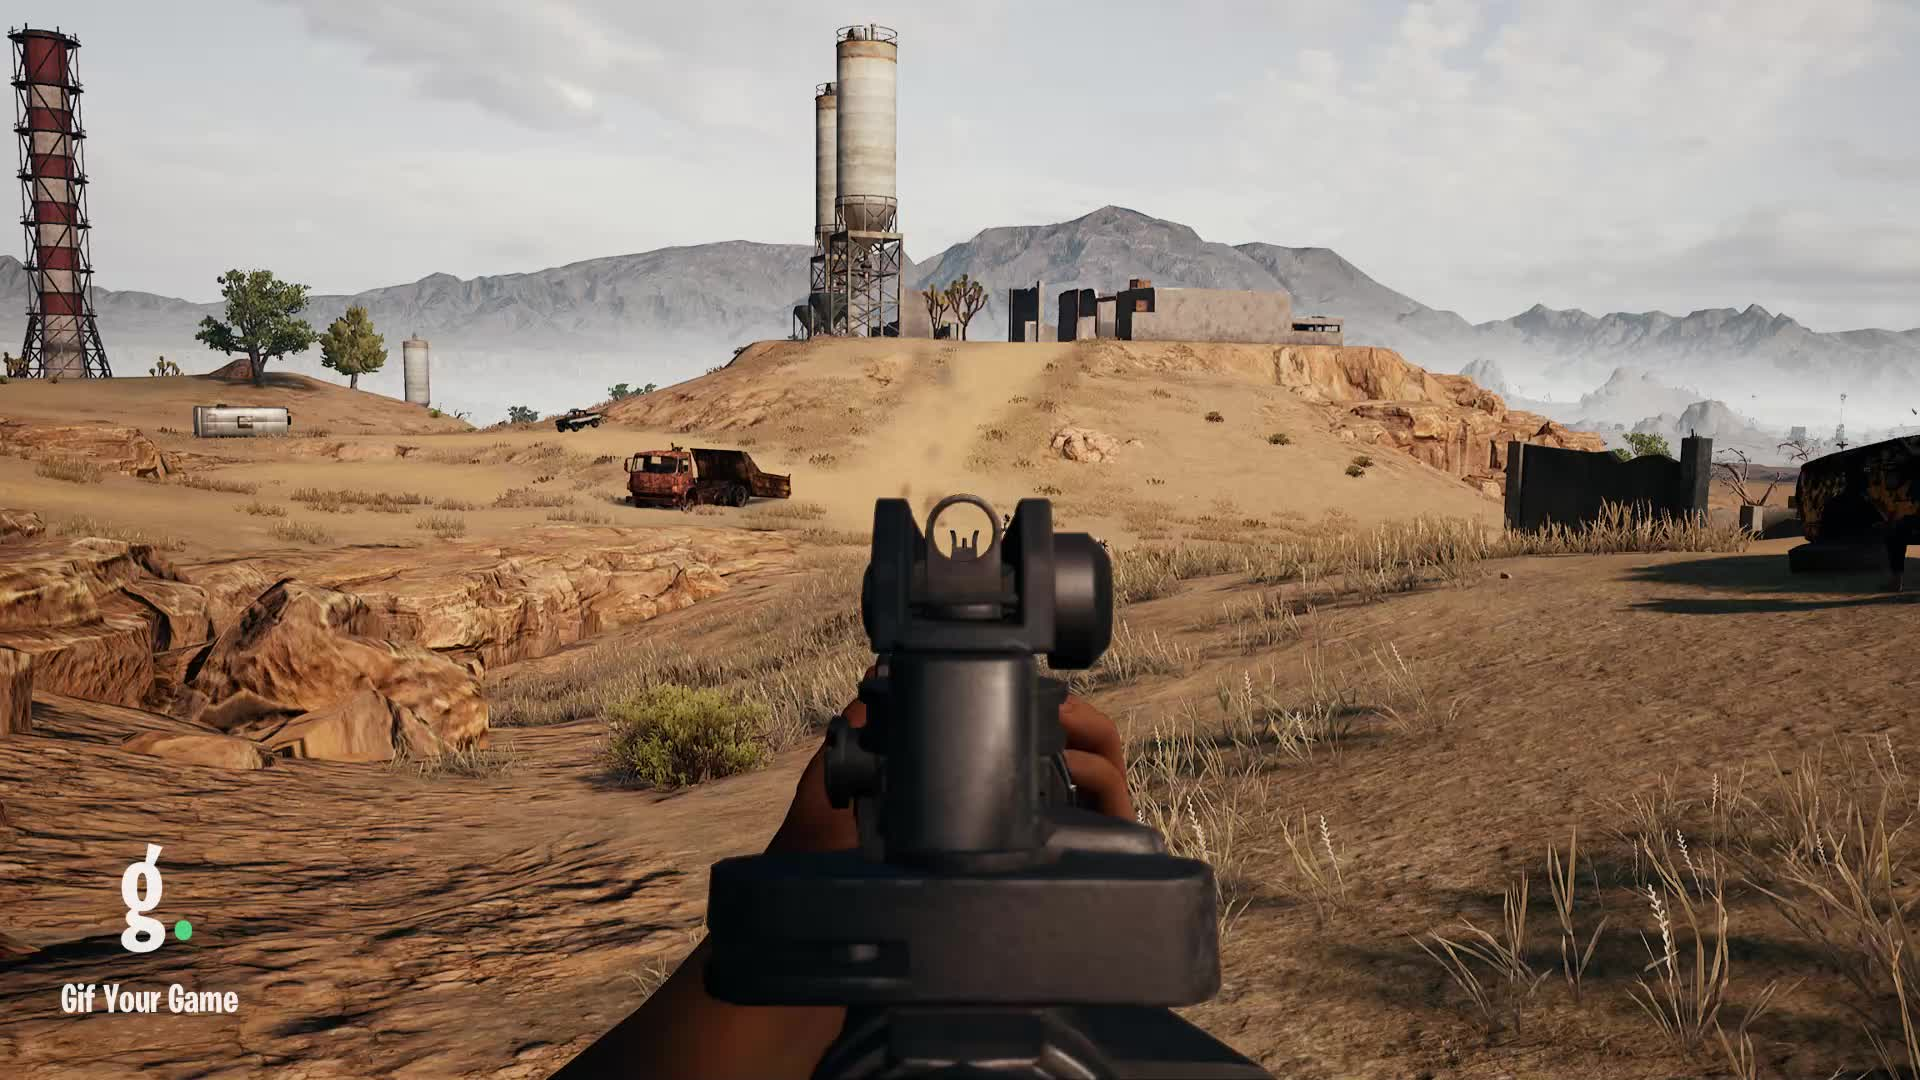 Gaming, Gif Your Game, GifYourGame, Kill, PUBG, PUBattlegrounds, gifyourgame killed azeller89 GIFs